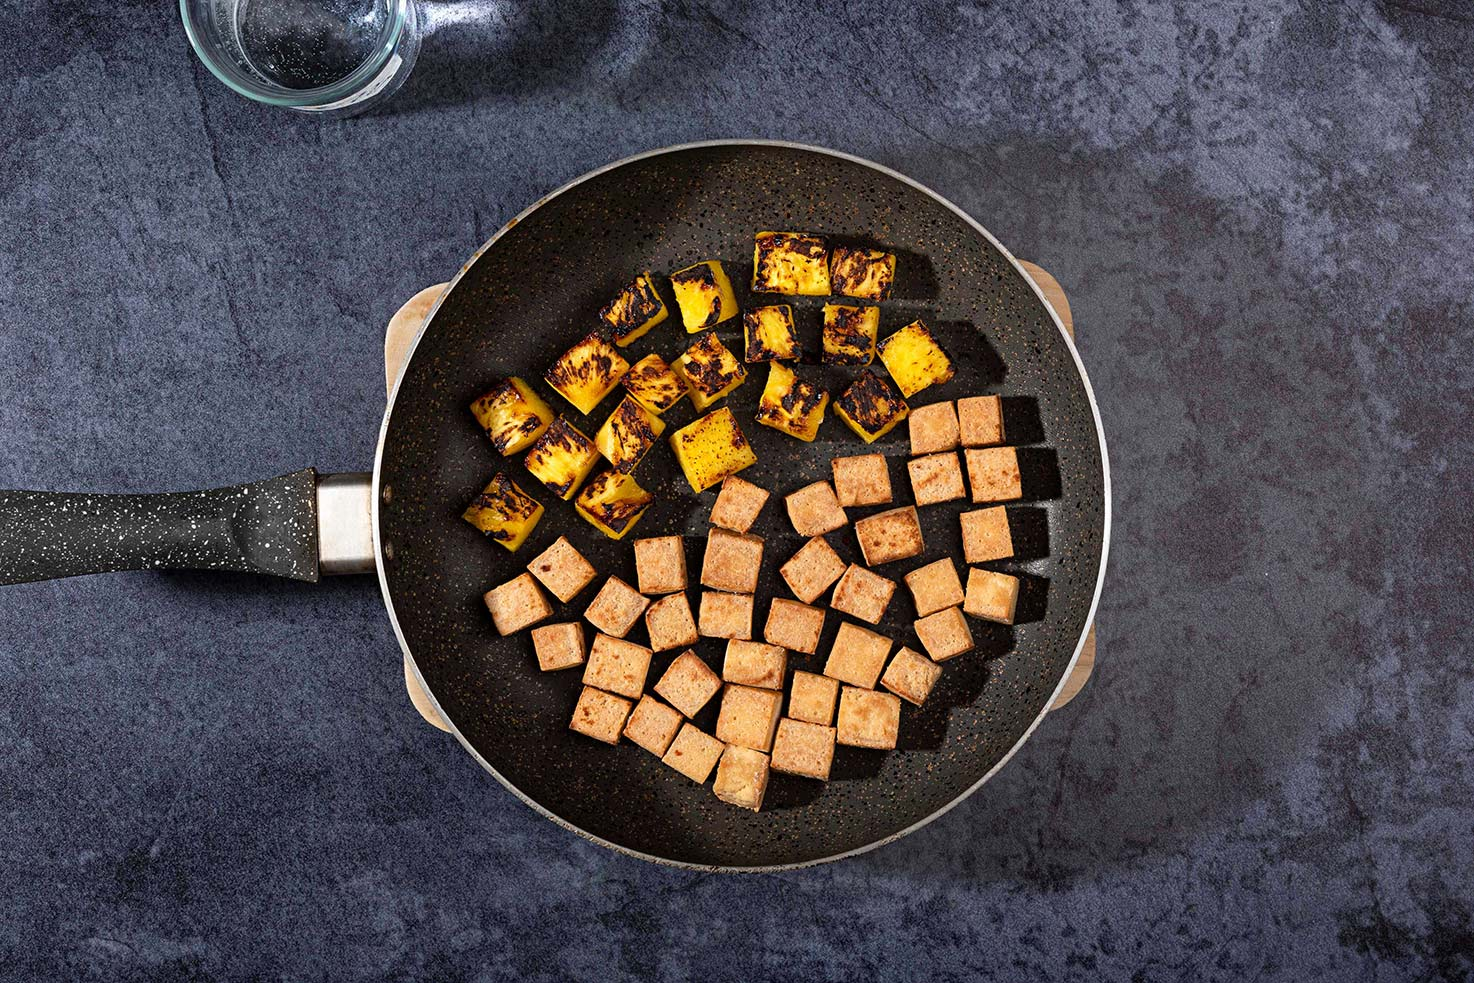 Tofu and pineapple cubes are frying in the pan | Hurry The Food Up